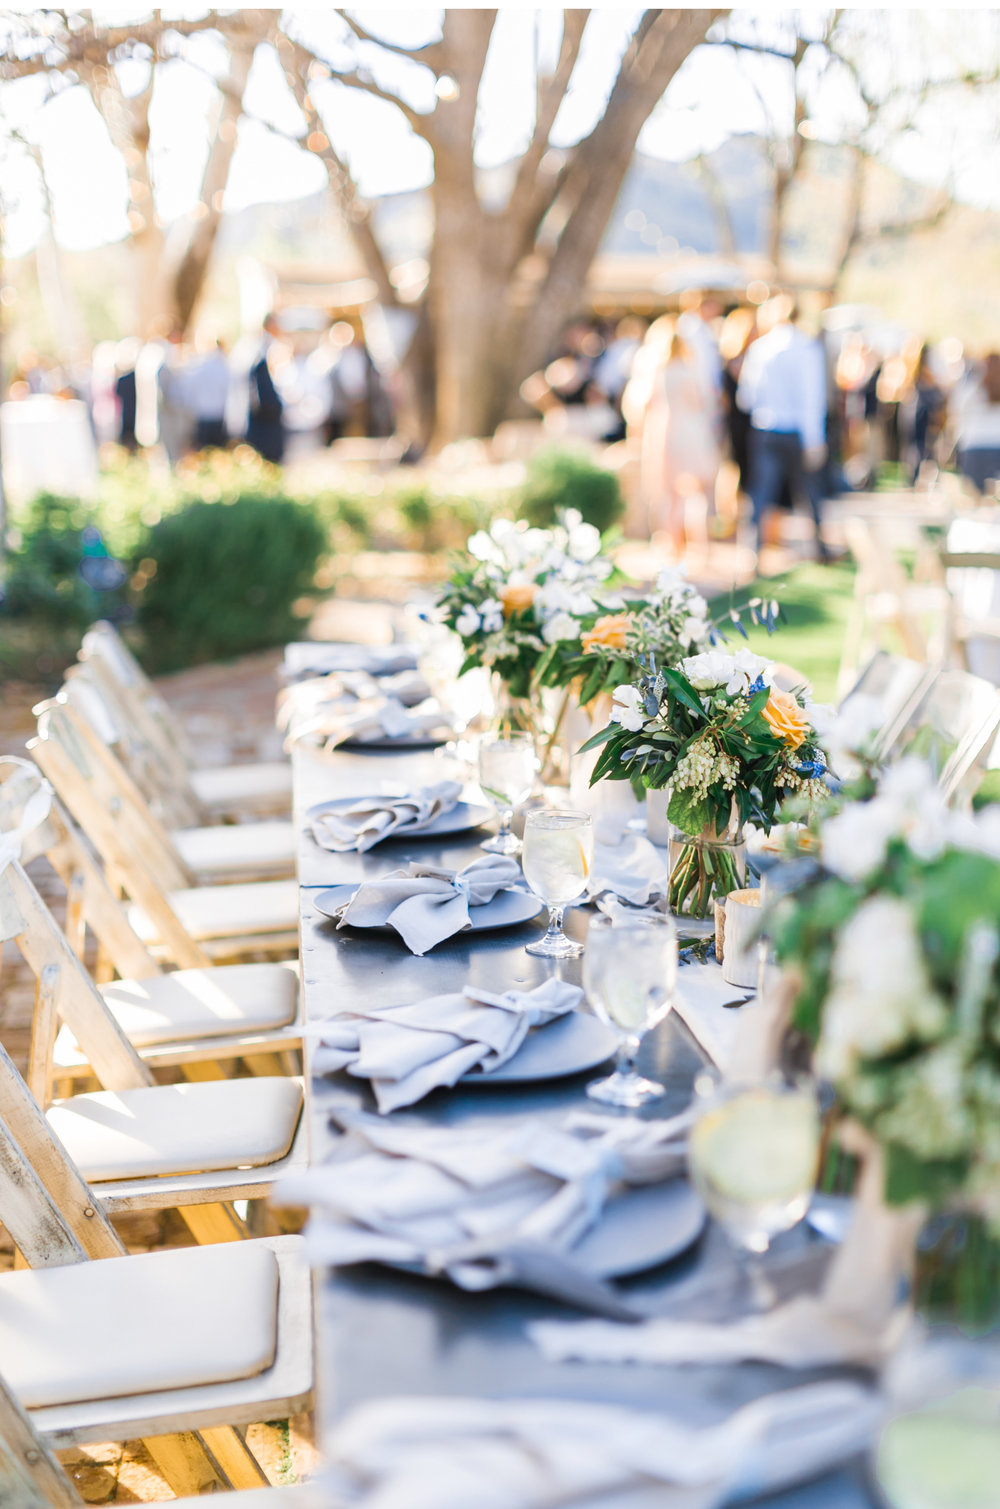 Triunfo-Creek-Malibu-Wedding-Natalie-Schutt-Photography-Couture-Events-Style-Me-Pretty_15.jpg